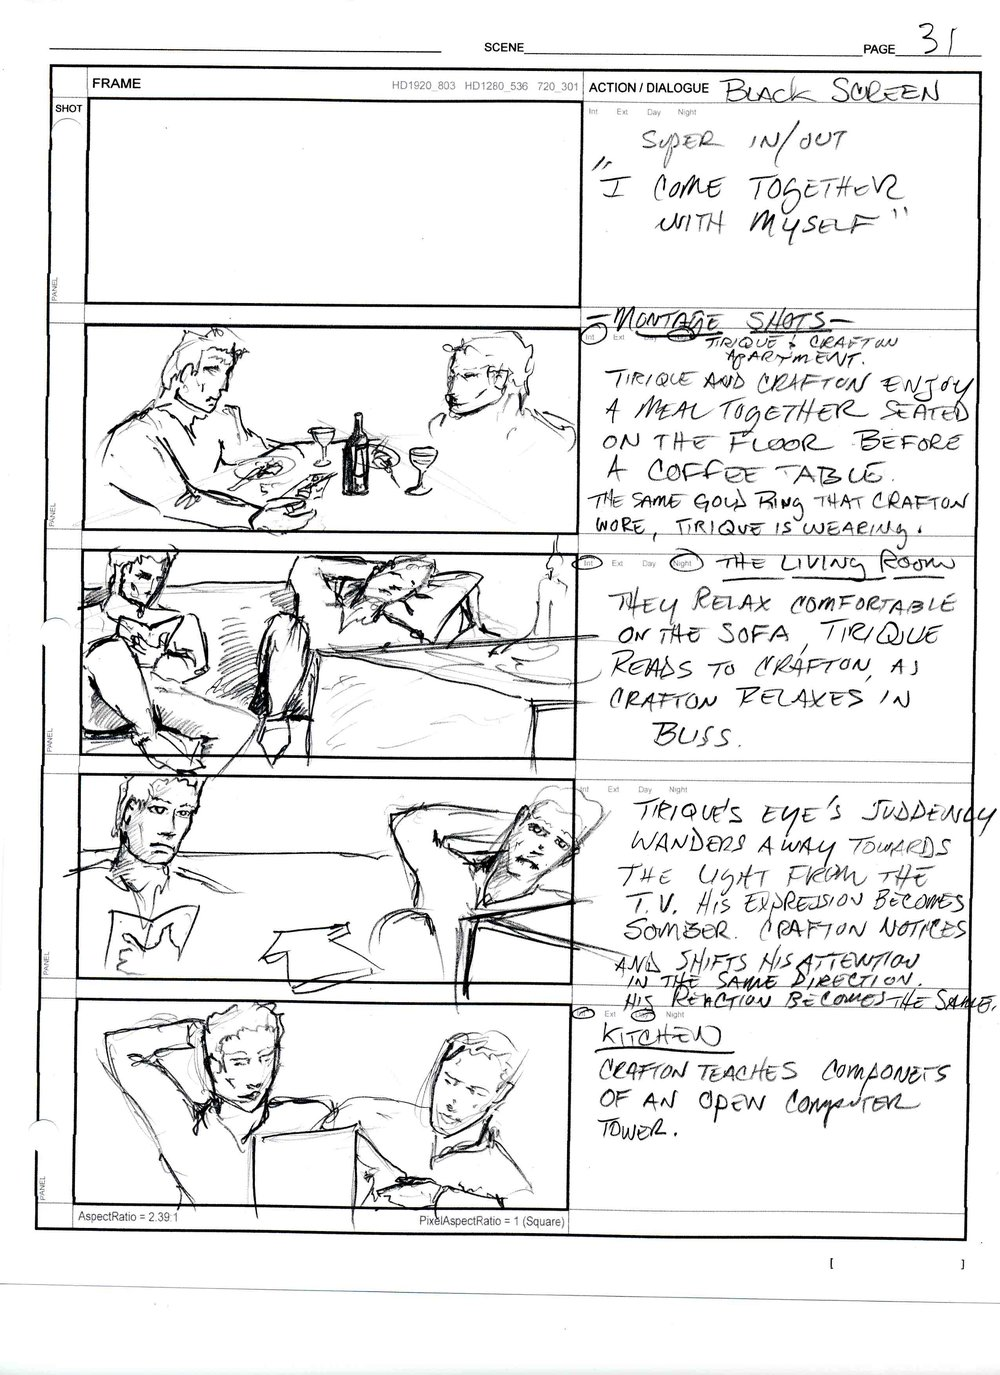 Let Us Start Now - Storyboards031.jpg